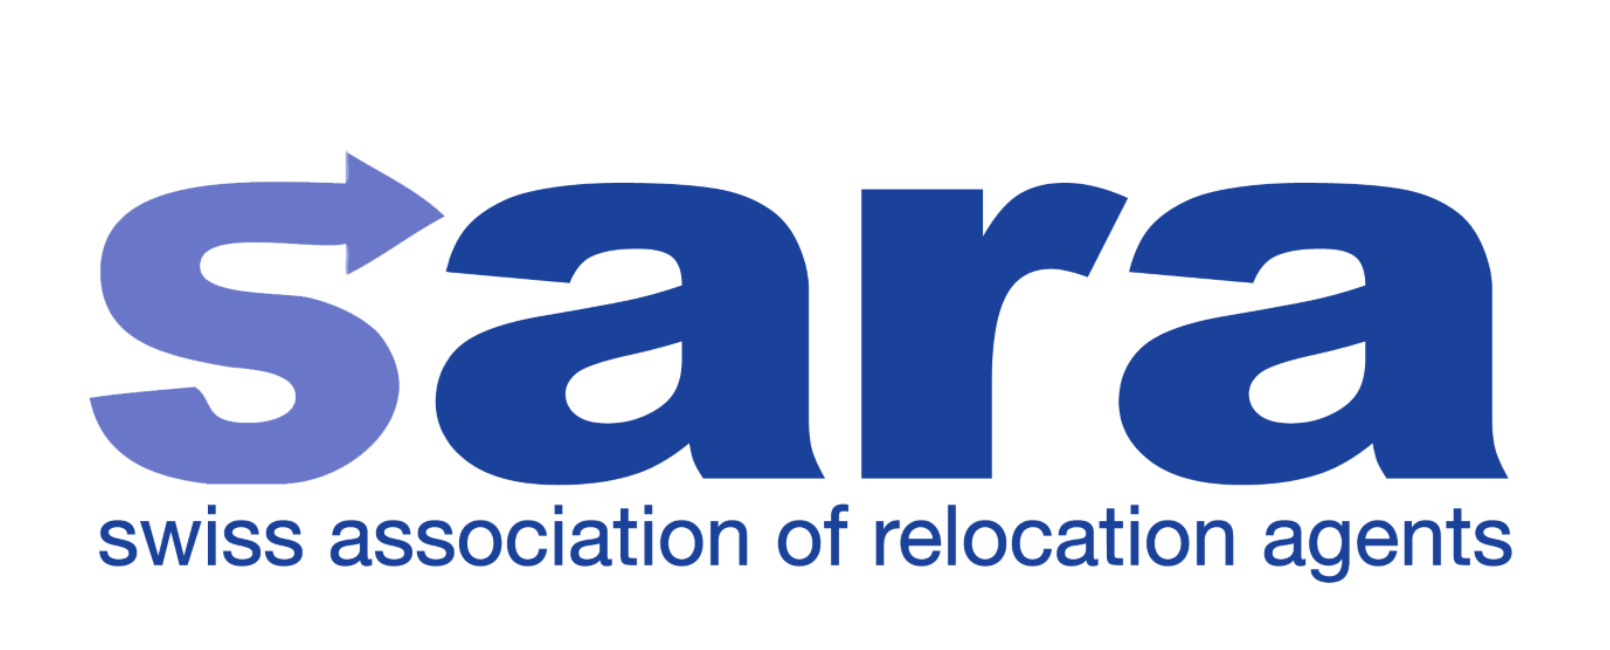 SARA - Swiss Association of Relocation Agents